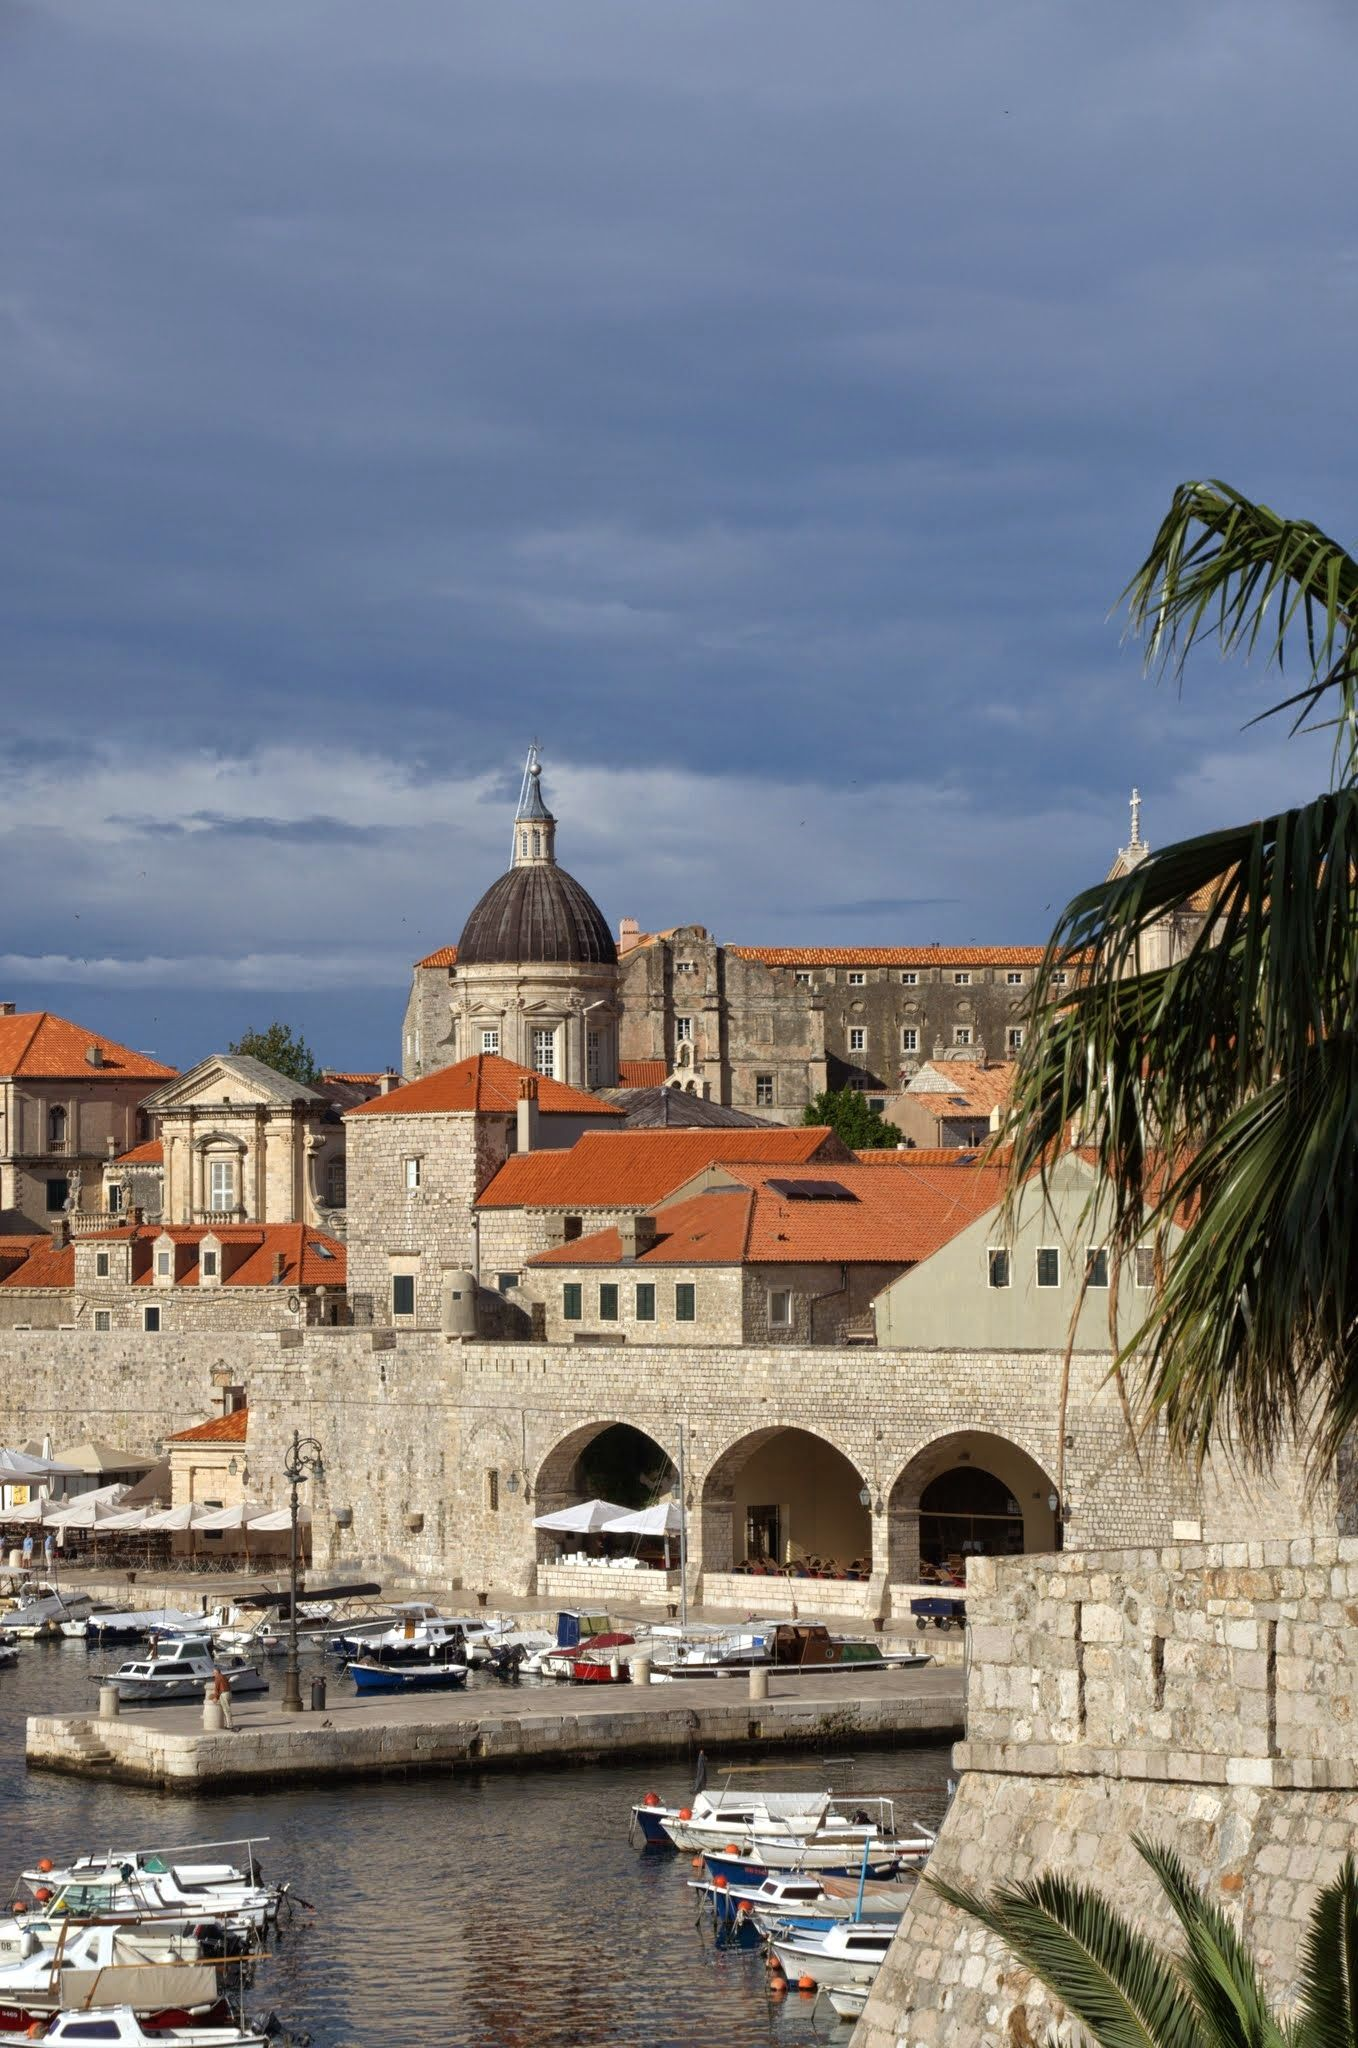 Discover dubrovnik old town guided walking tour - The Port Of Old Town Dubrovnik